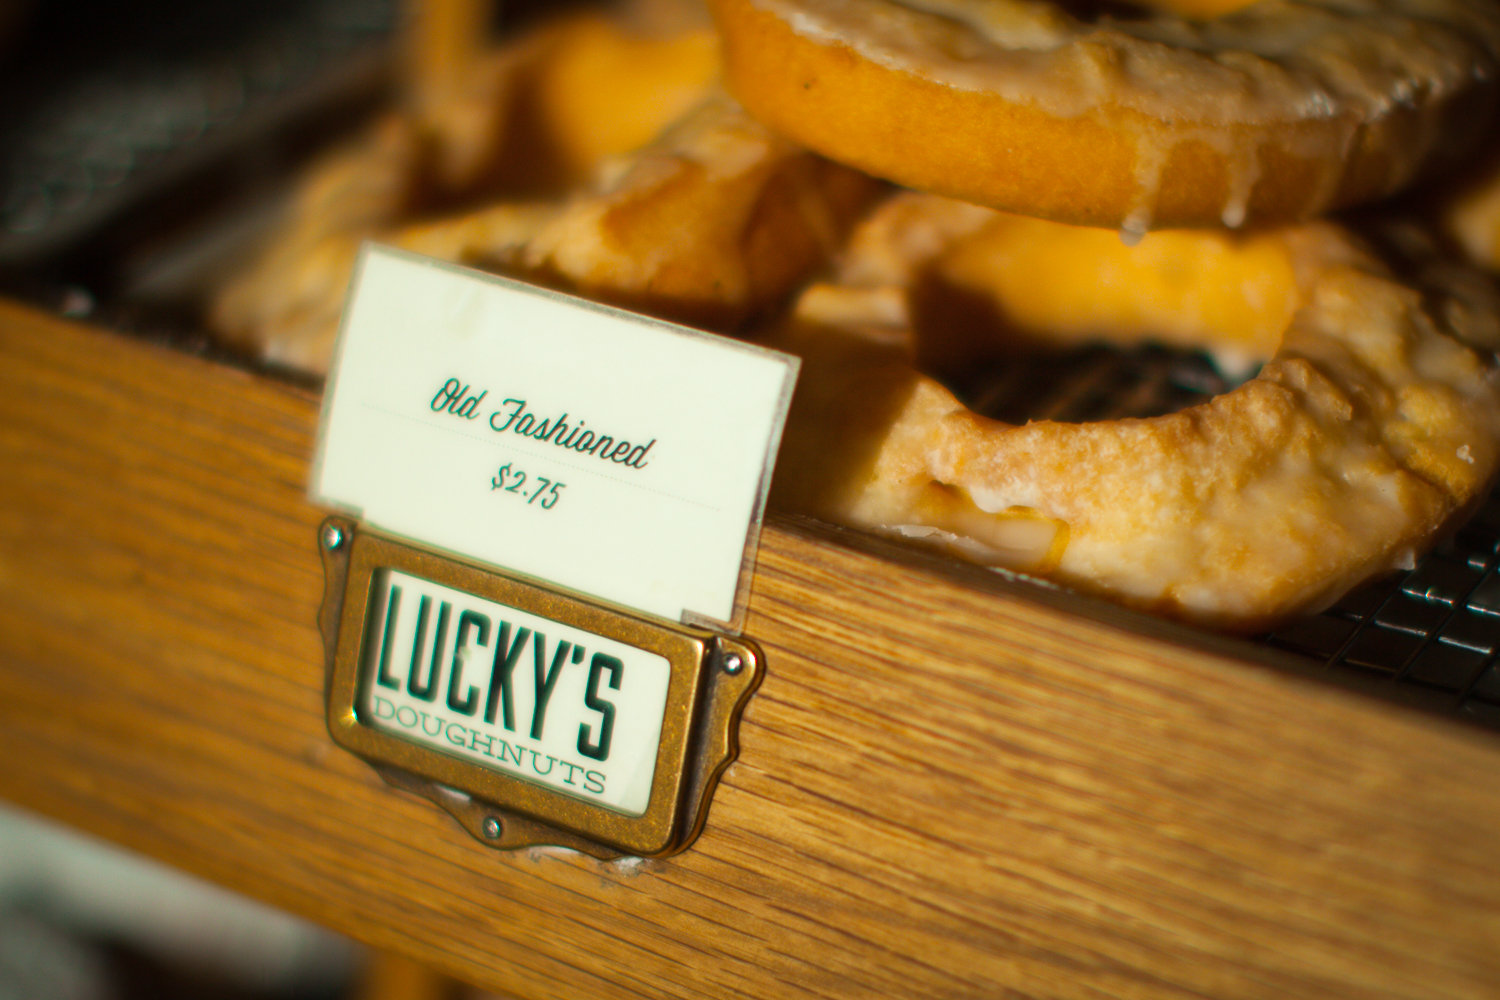 If you haven't tried Lucky's Doughnuts located in East Vancouver, you are missing out.